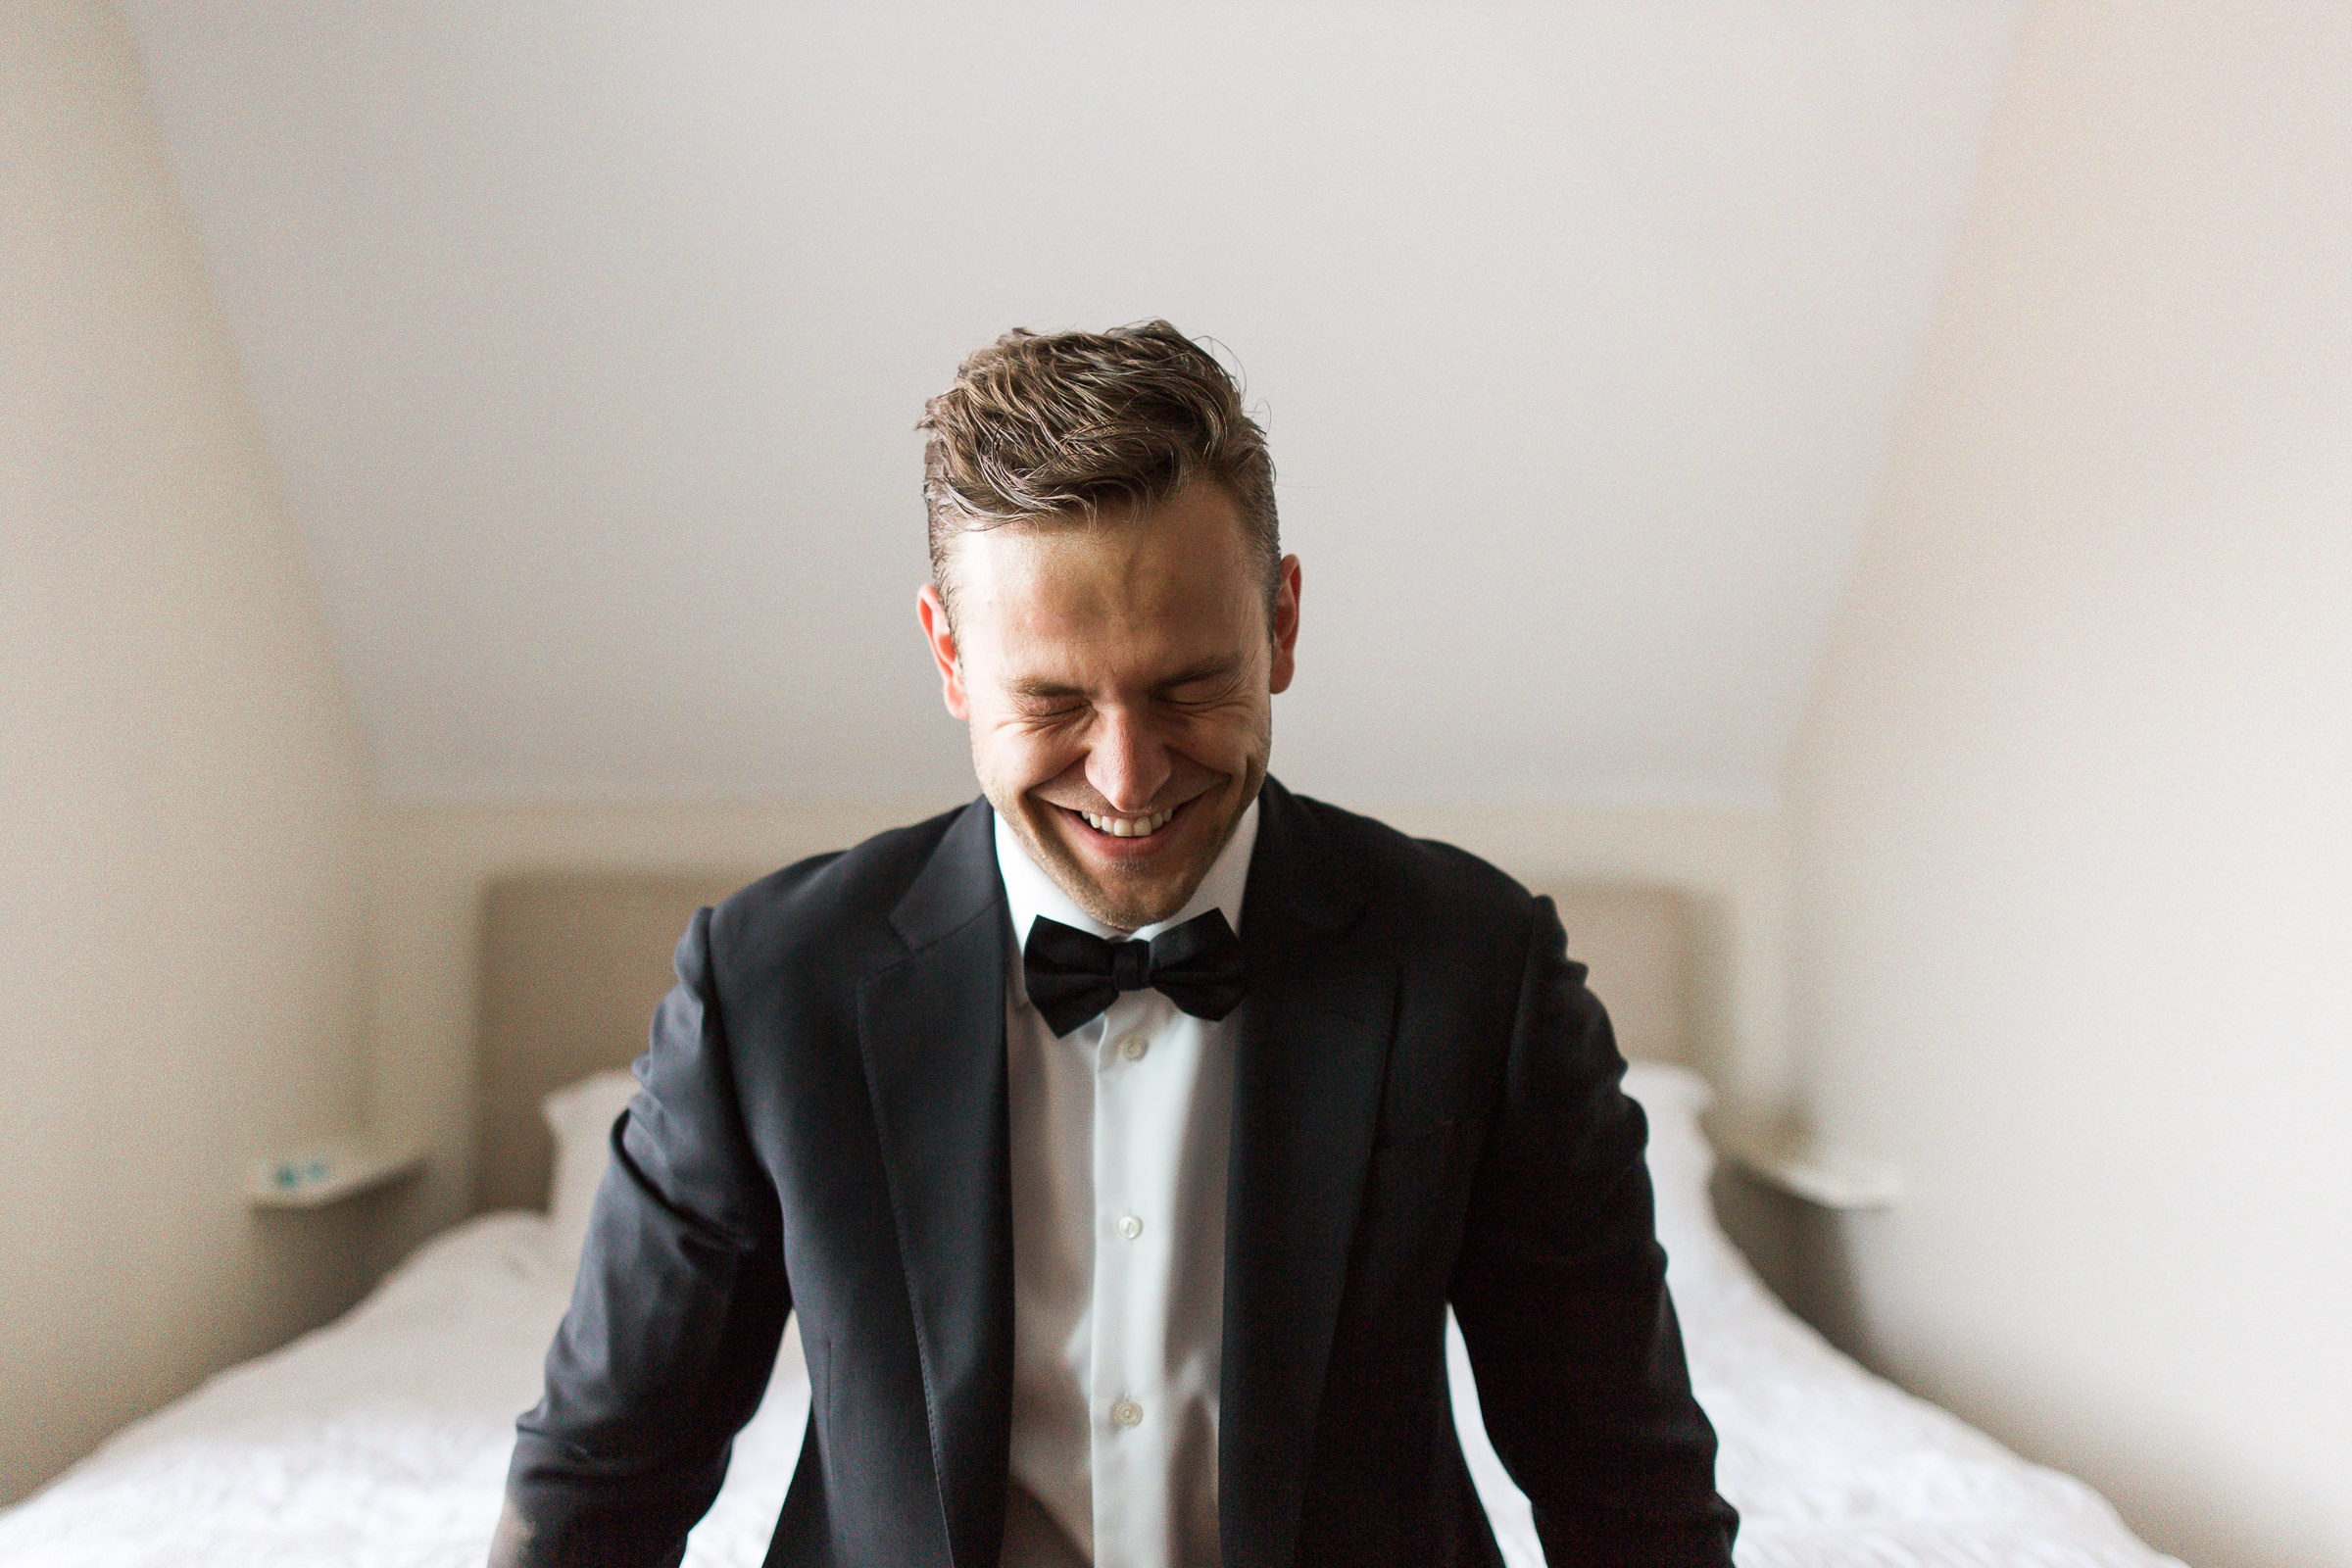 Groom closes his eyes before seeing bride - photo by M. Hart - Los Angeles photographer